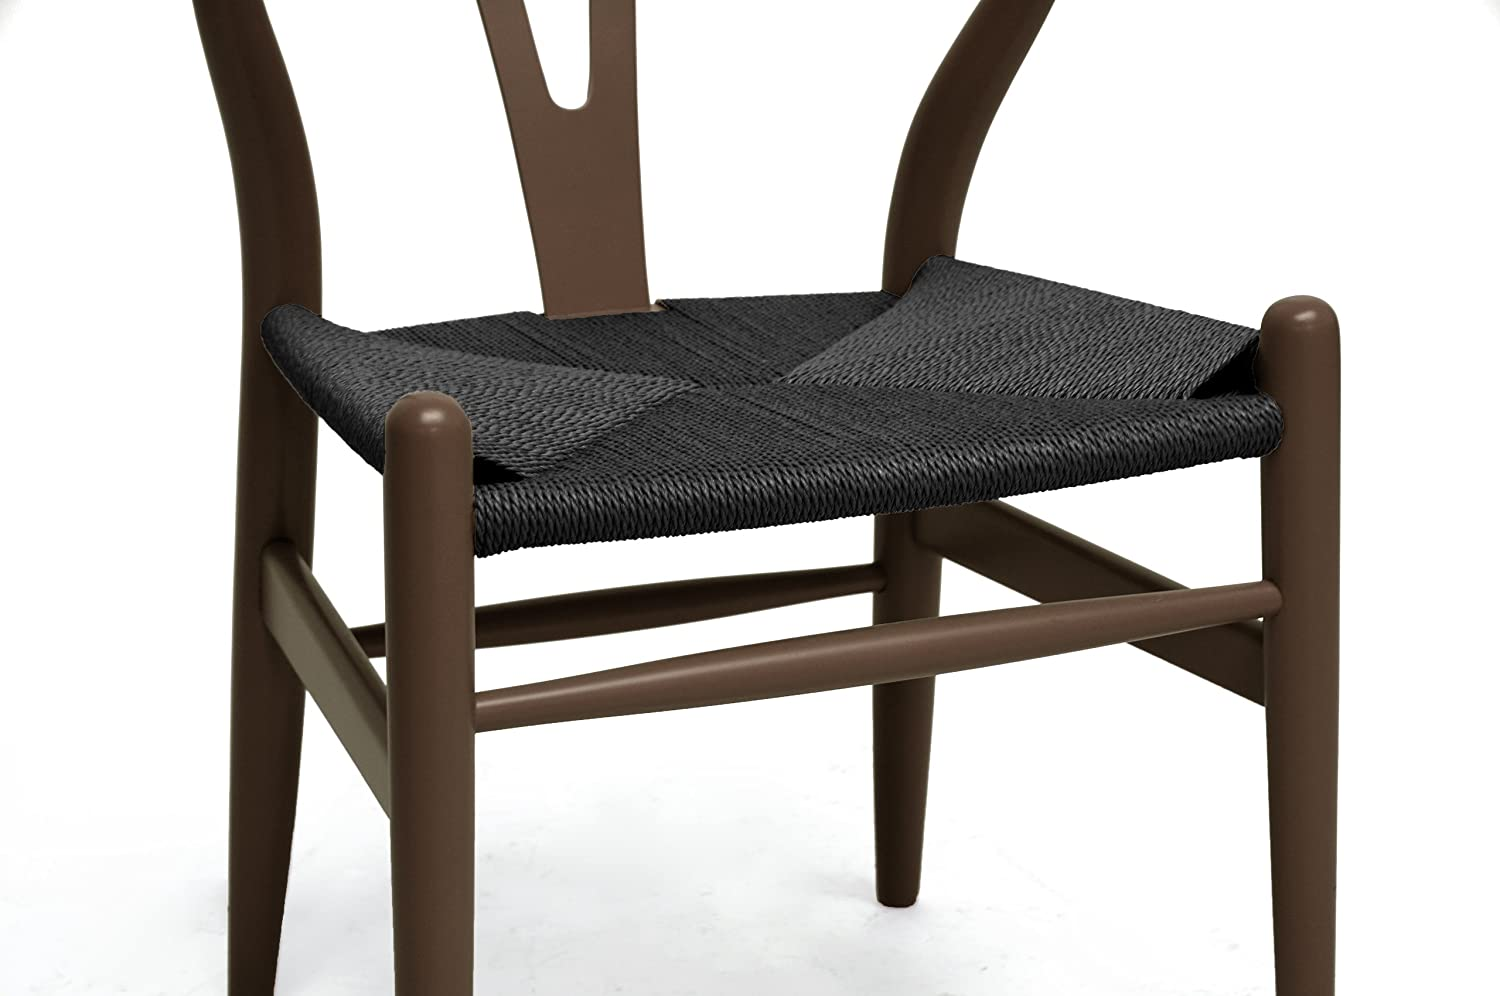 Superior Amazon.com   Baxton Studio Wishbone Chair/Brown Wood Y Chair With Black  Seat   Chairs